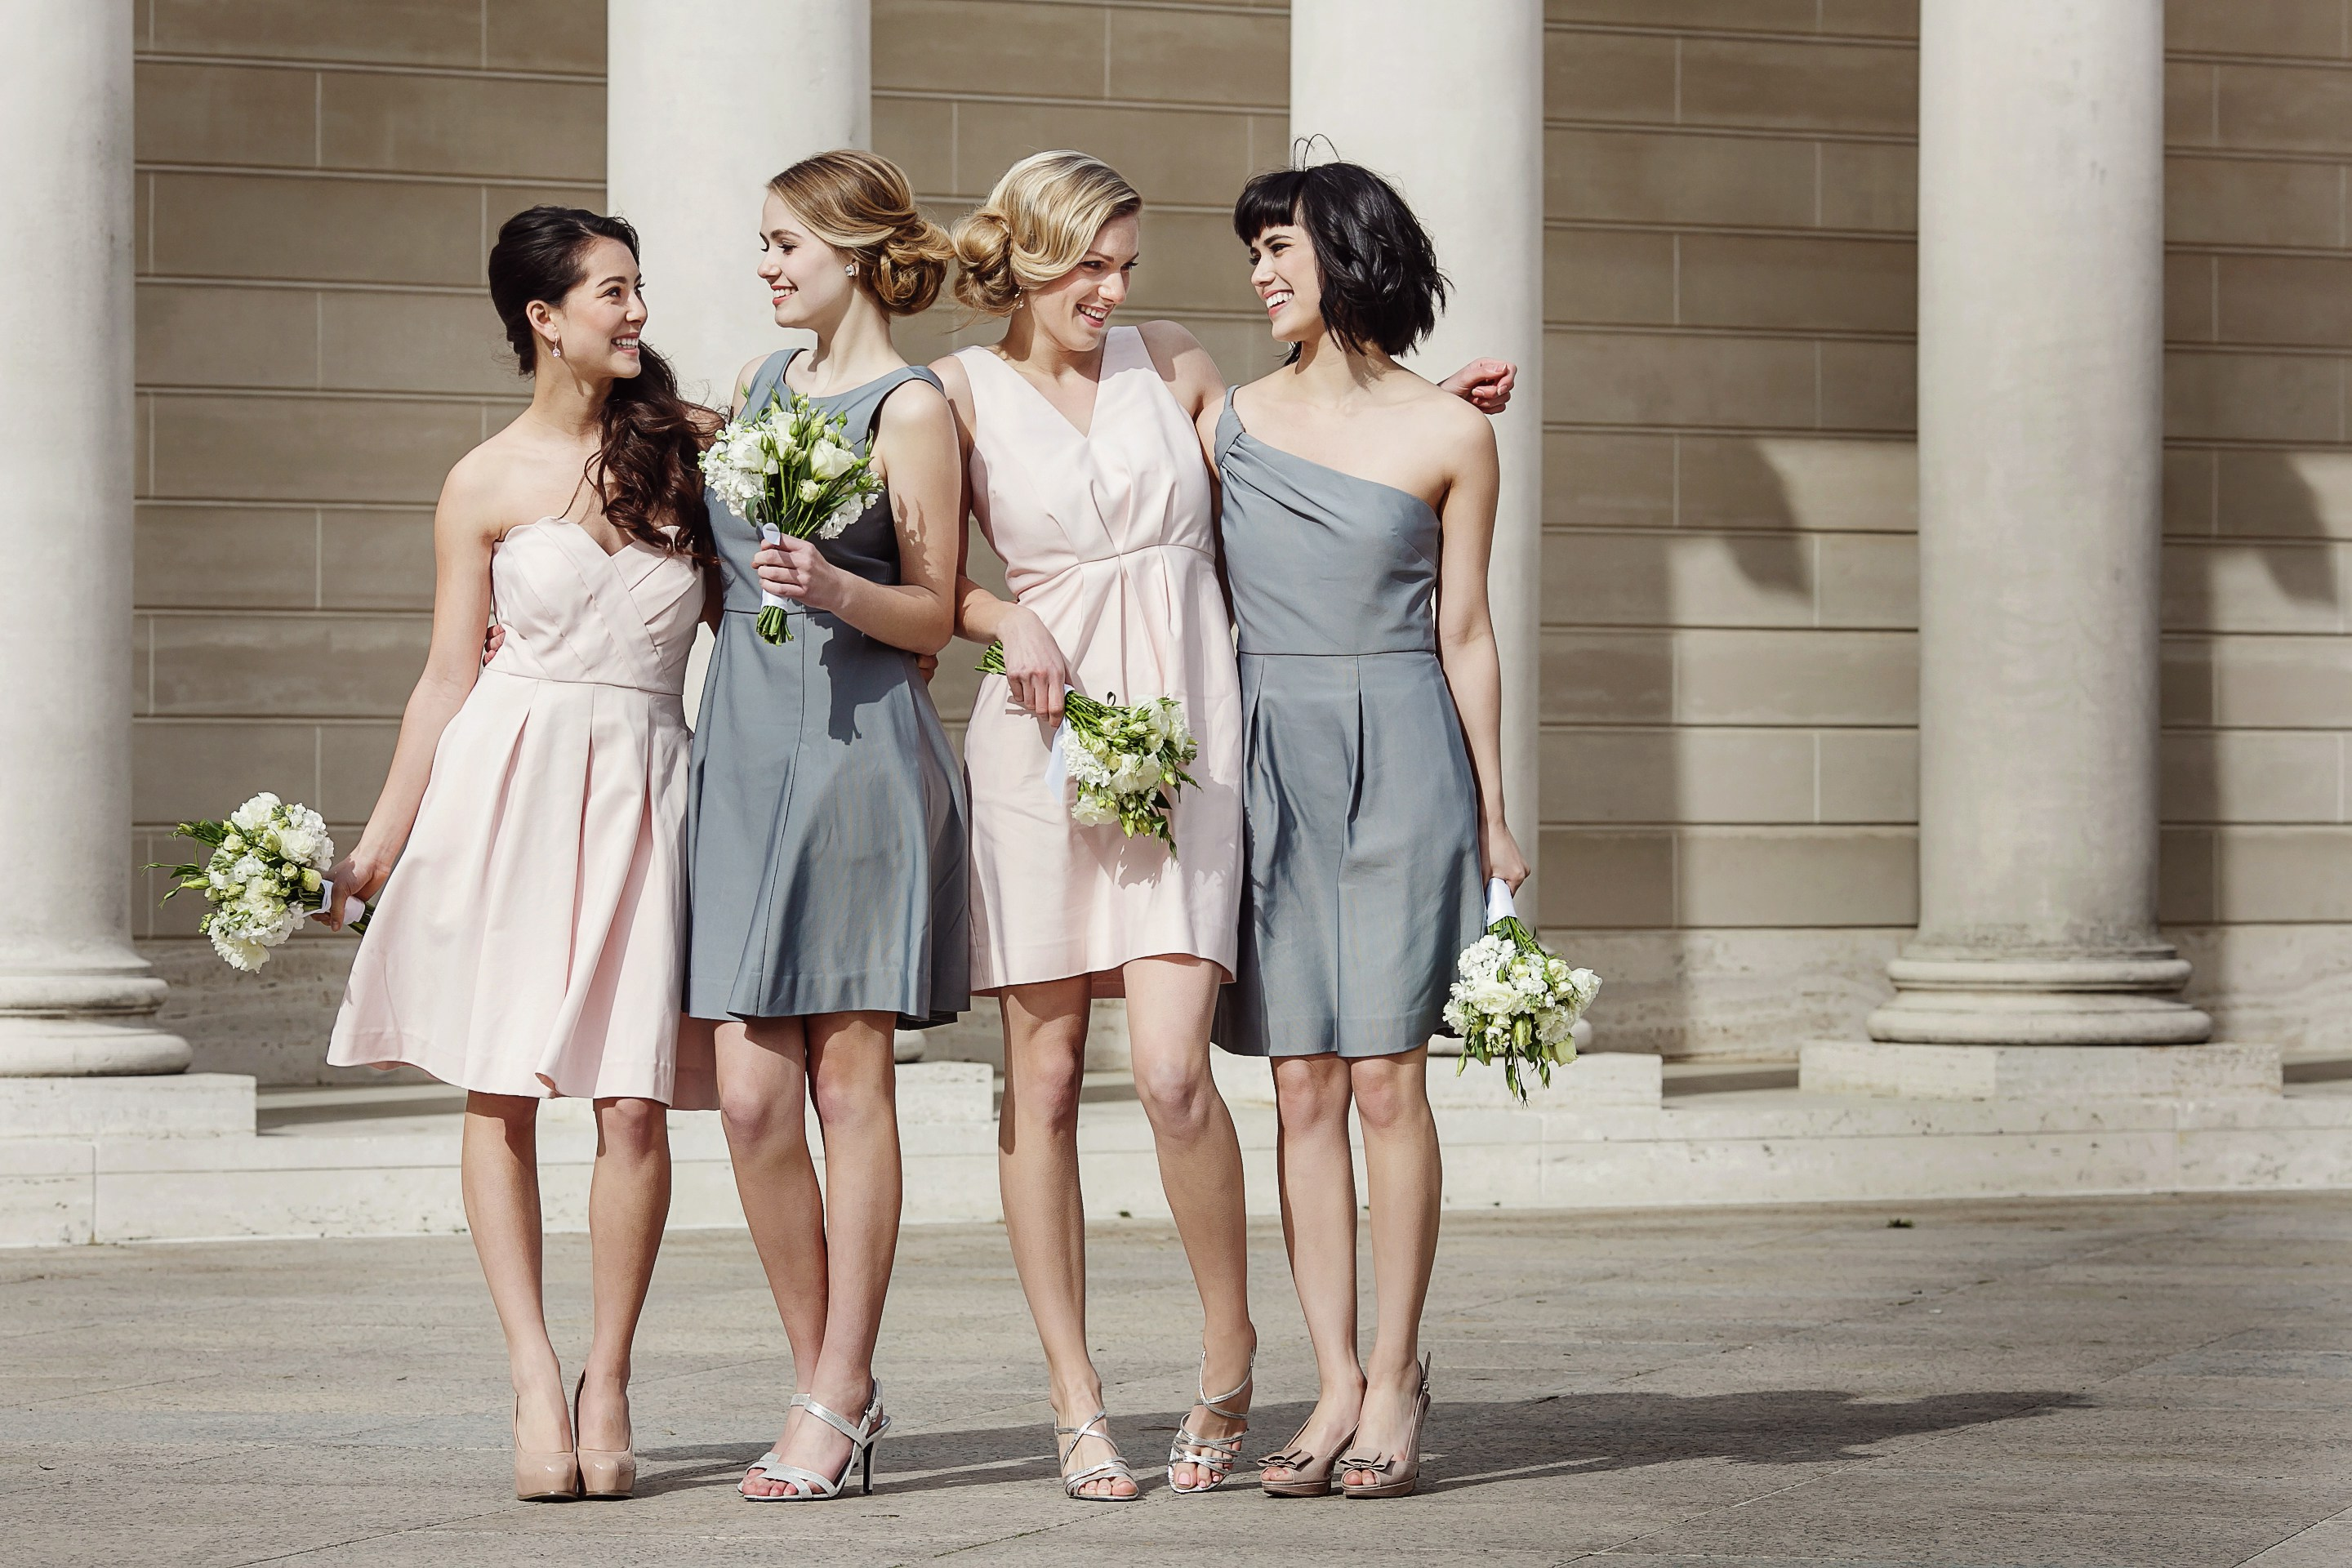 Top 4 Picks For Bridesmaid Dresses Rental Sites